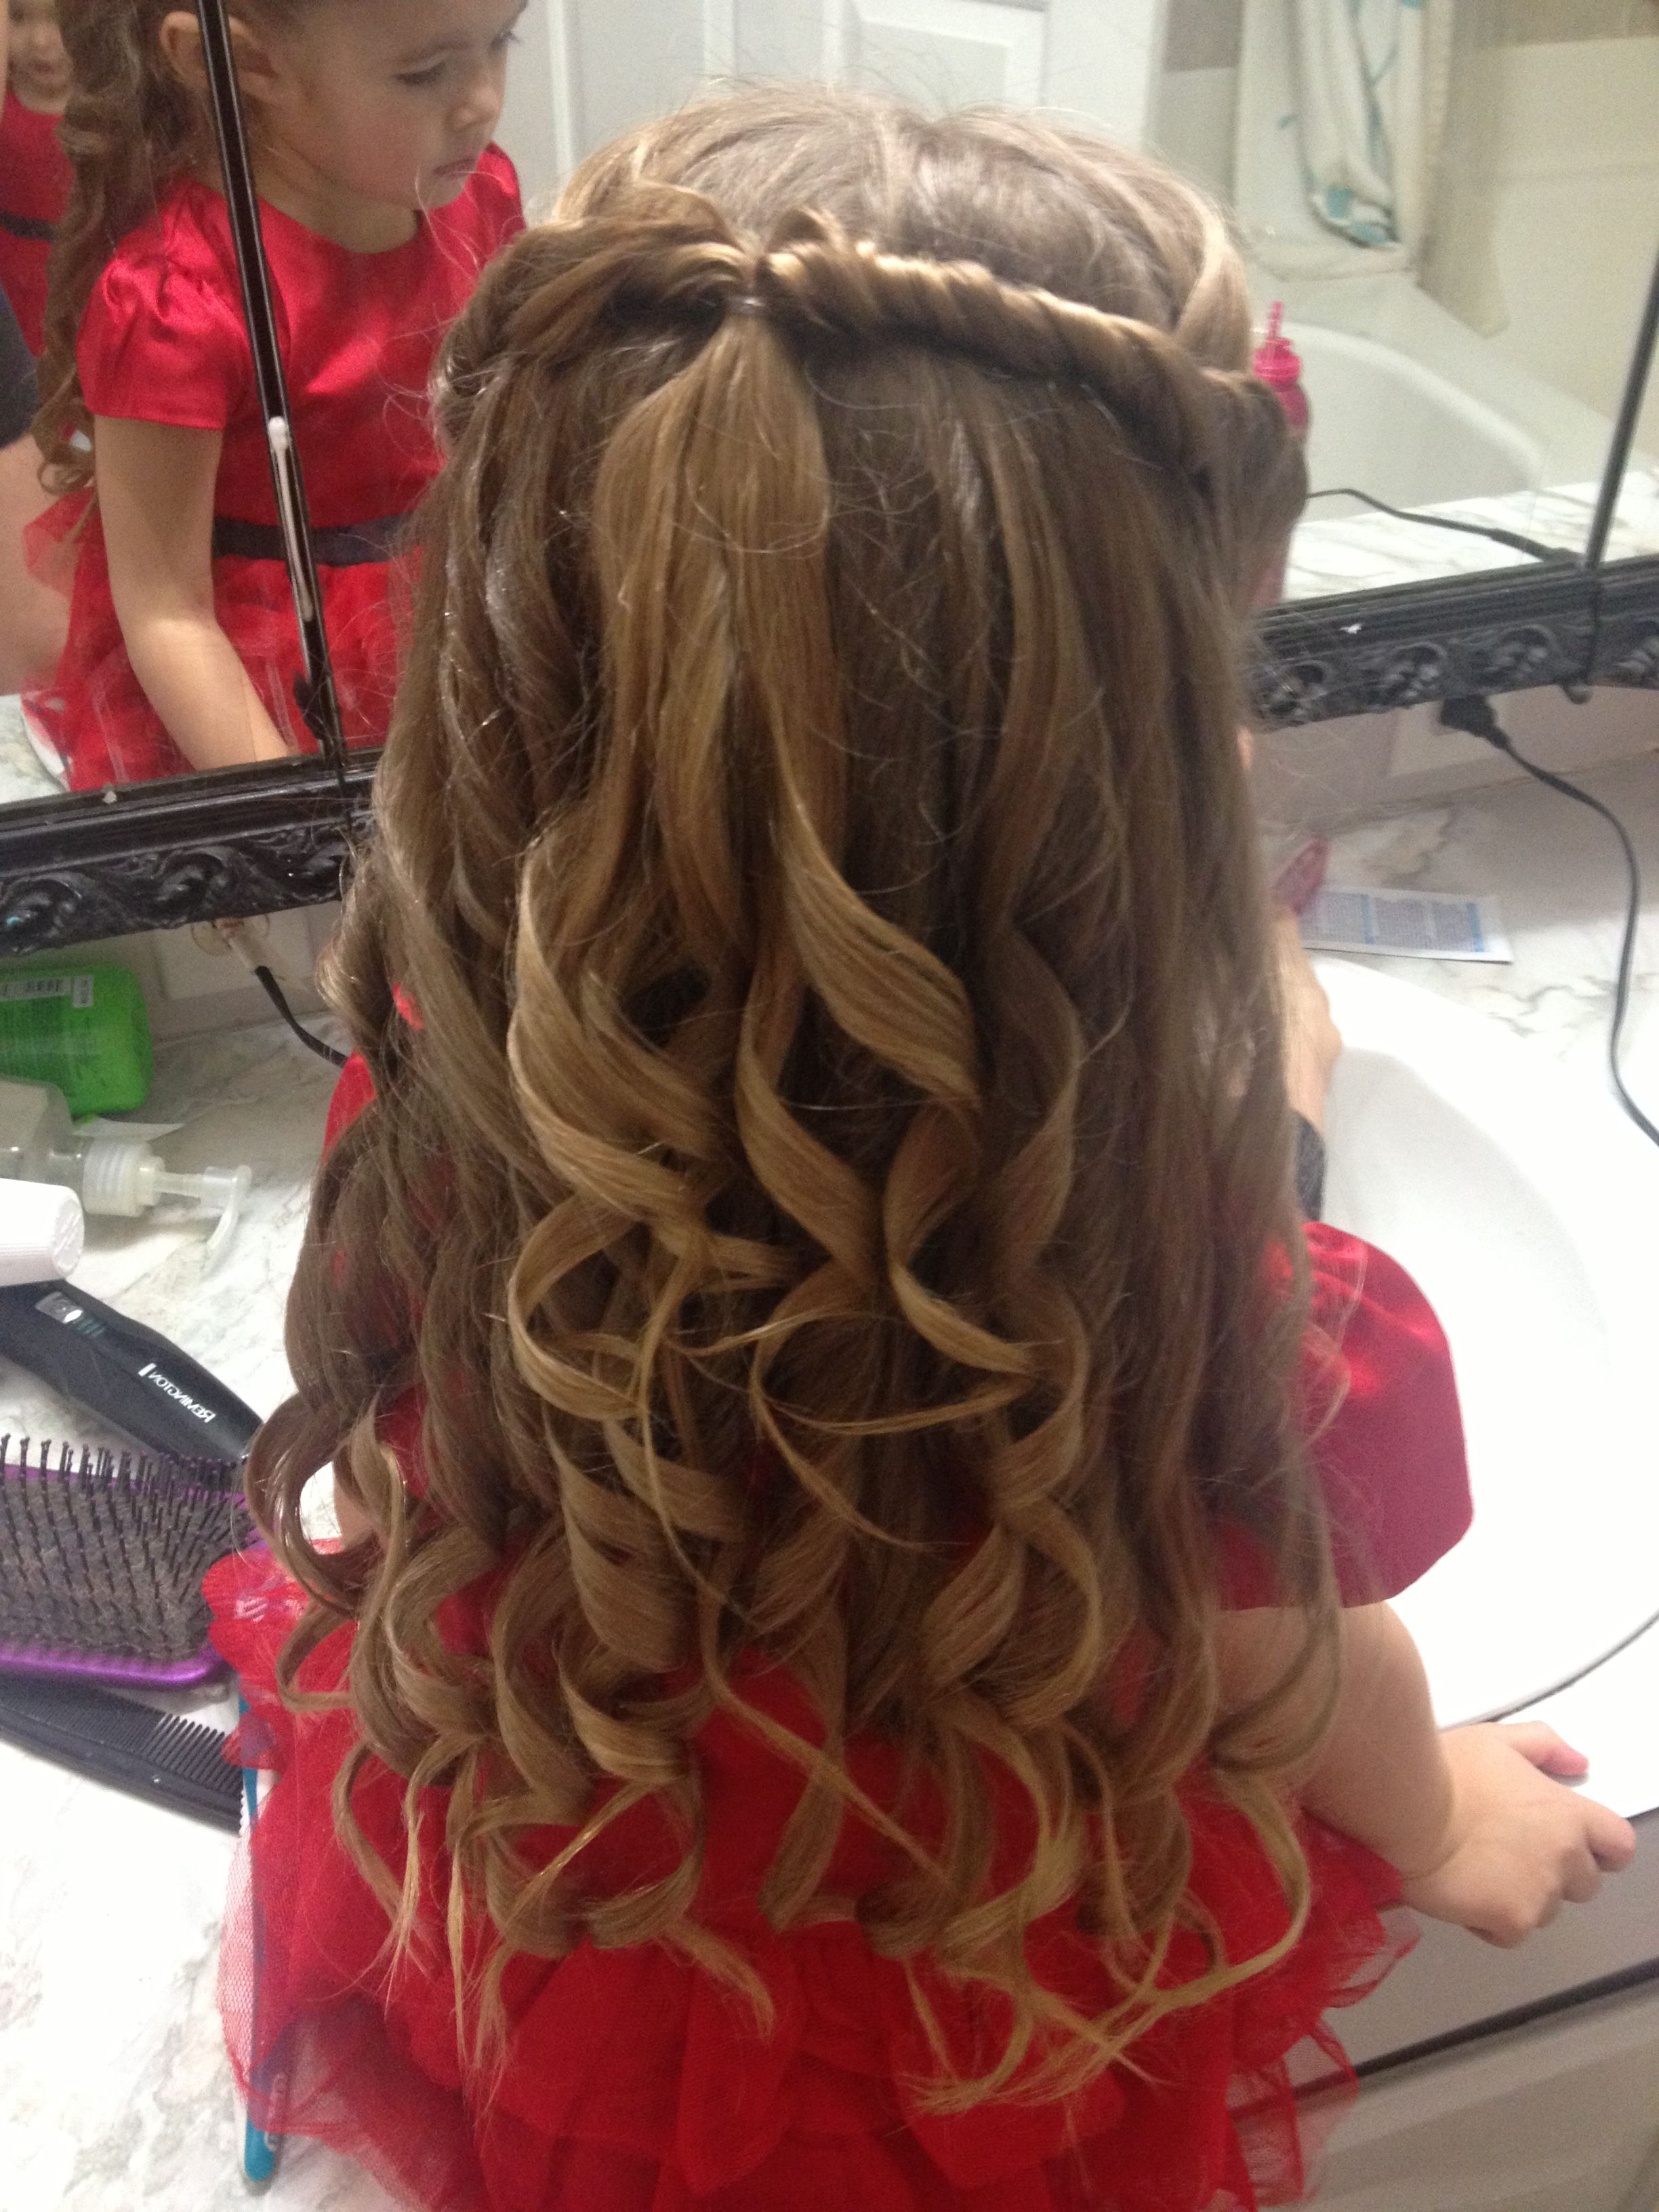 Cute Little Girls Hair Style For A Special Occasion (View 7 of 20)